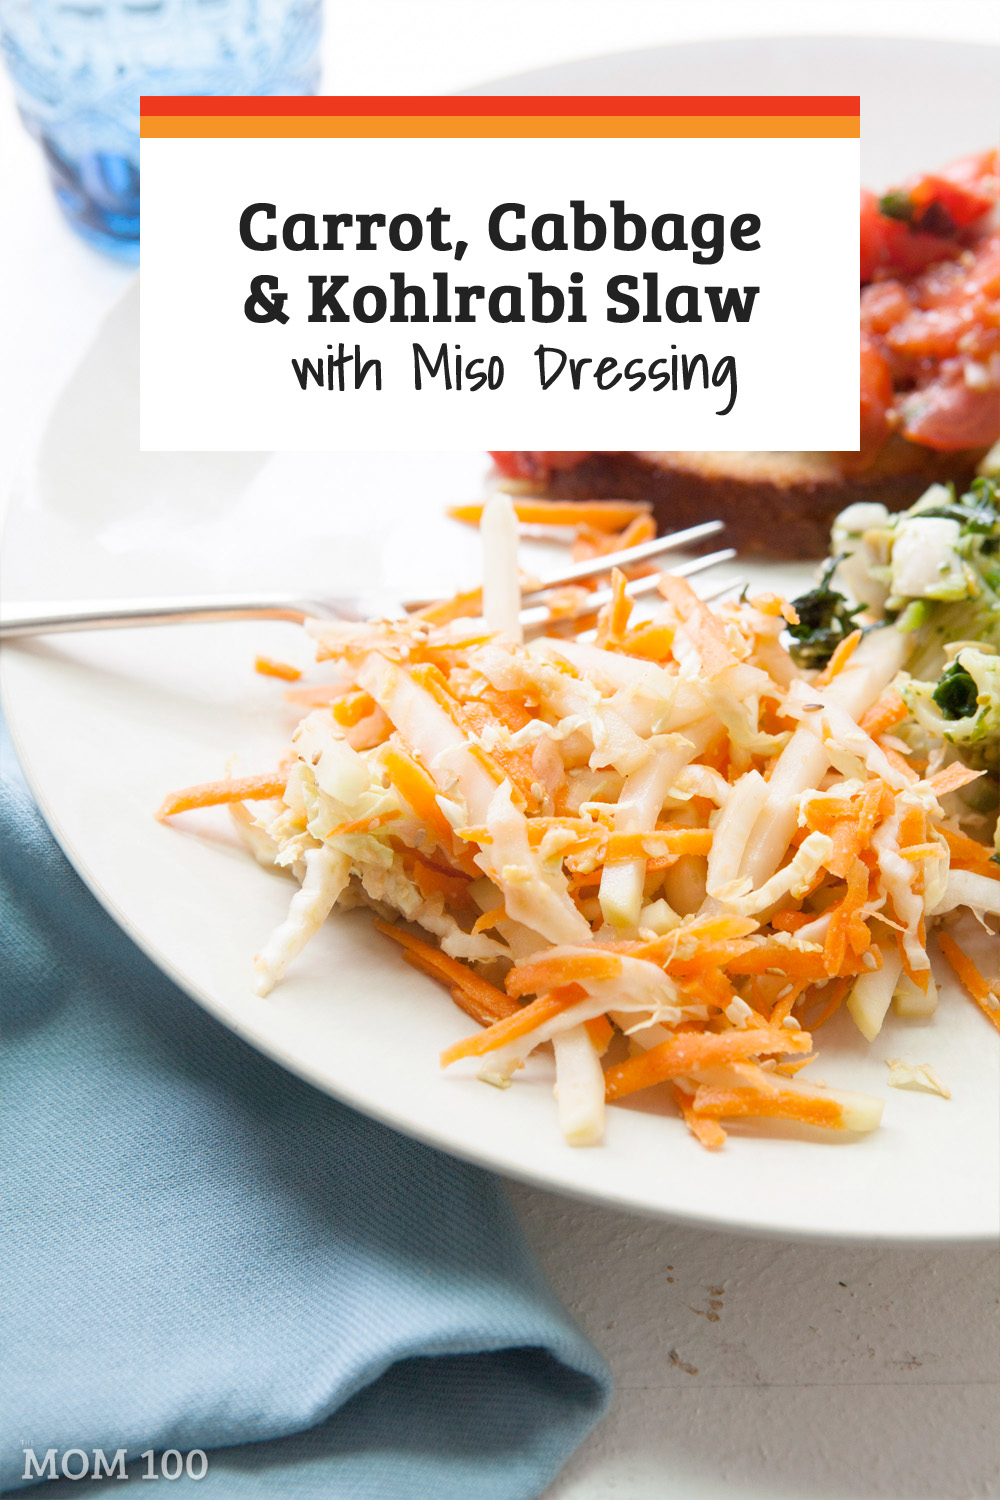 This crunchy and colorful Carrot, Cabbage and Kohlrabi Slaw recipe is inspired by ginger-miso dressing found in Japanese restaurants.